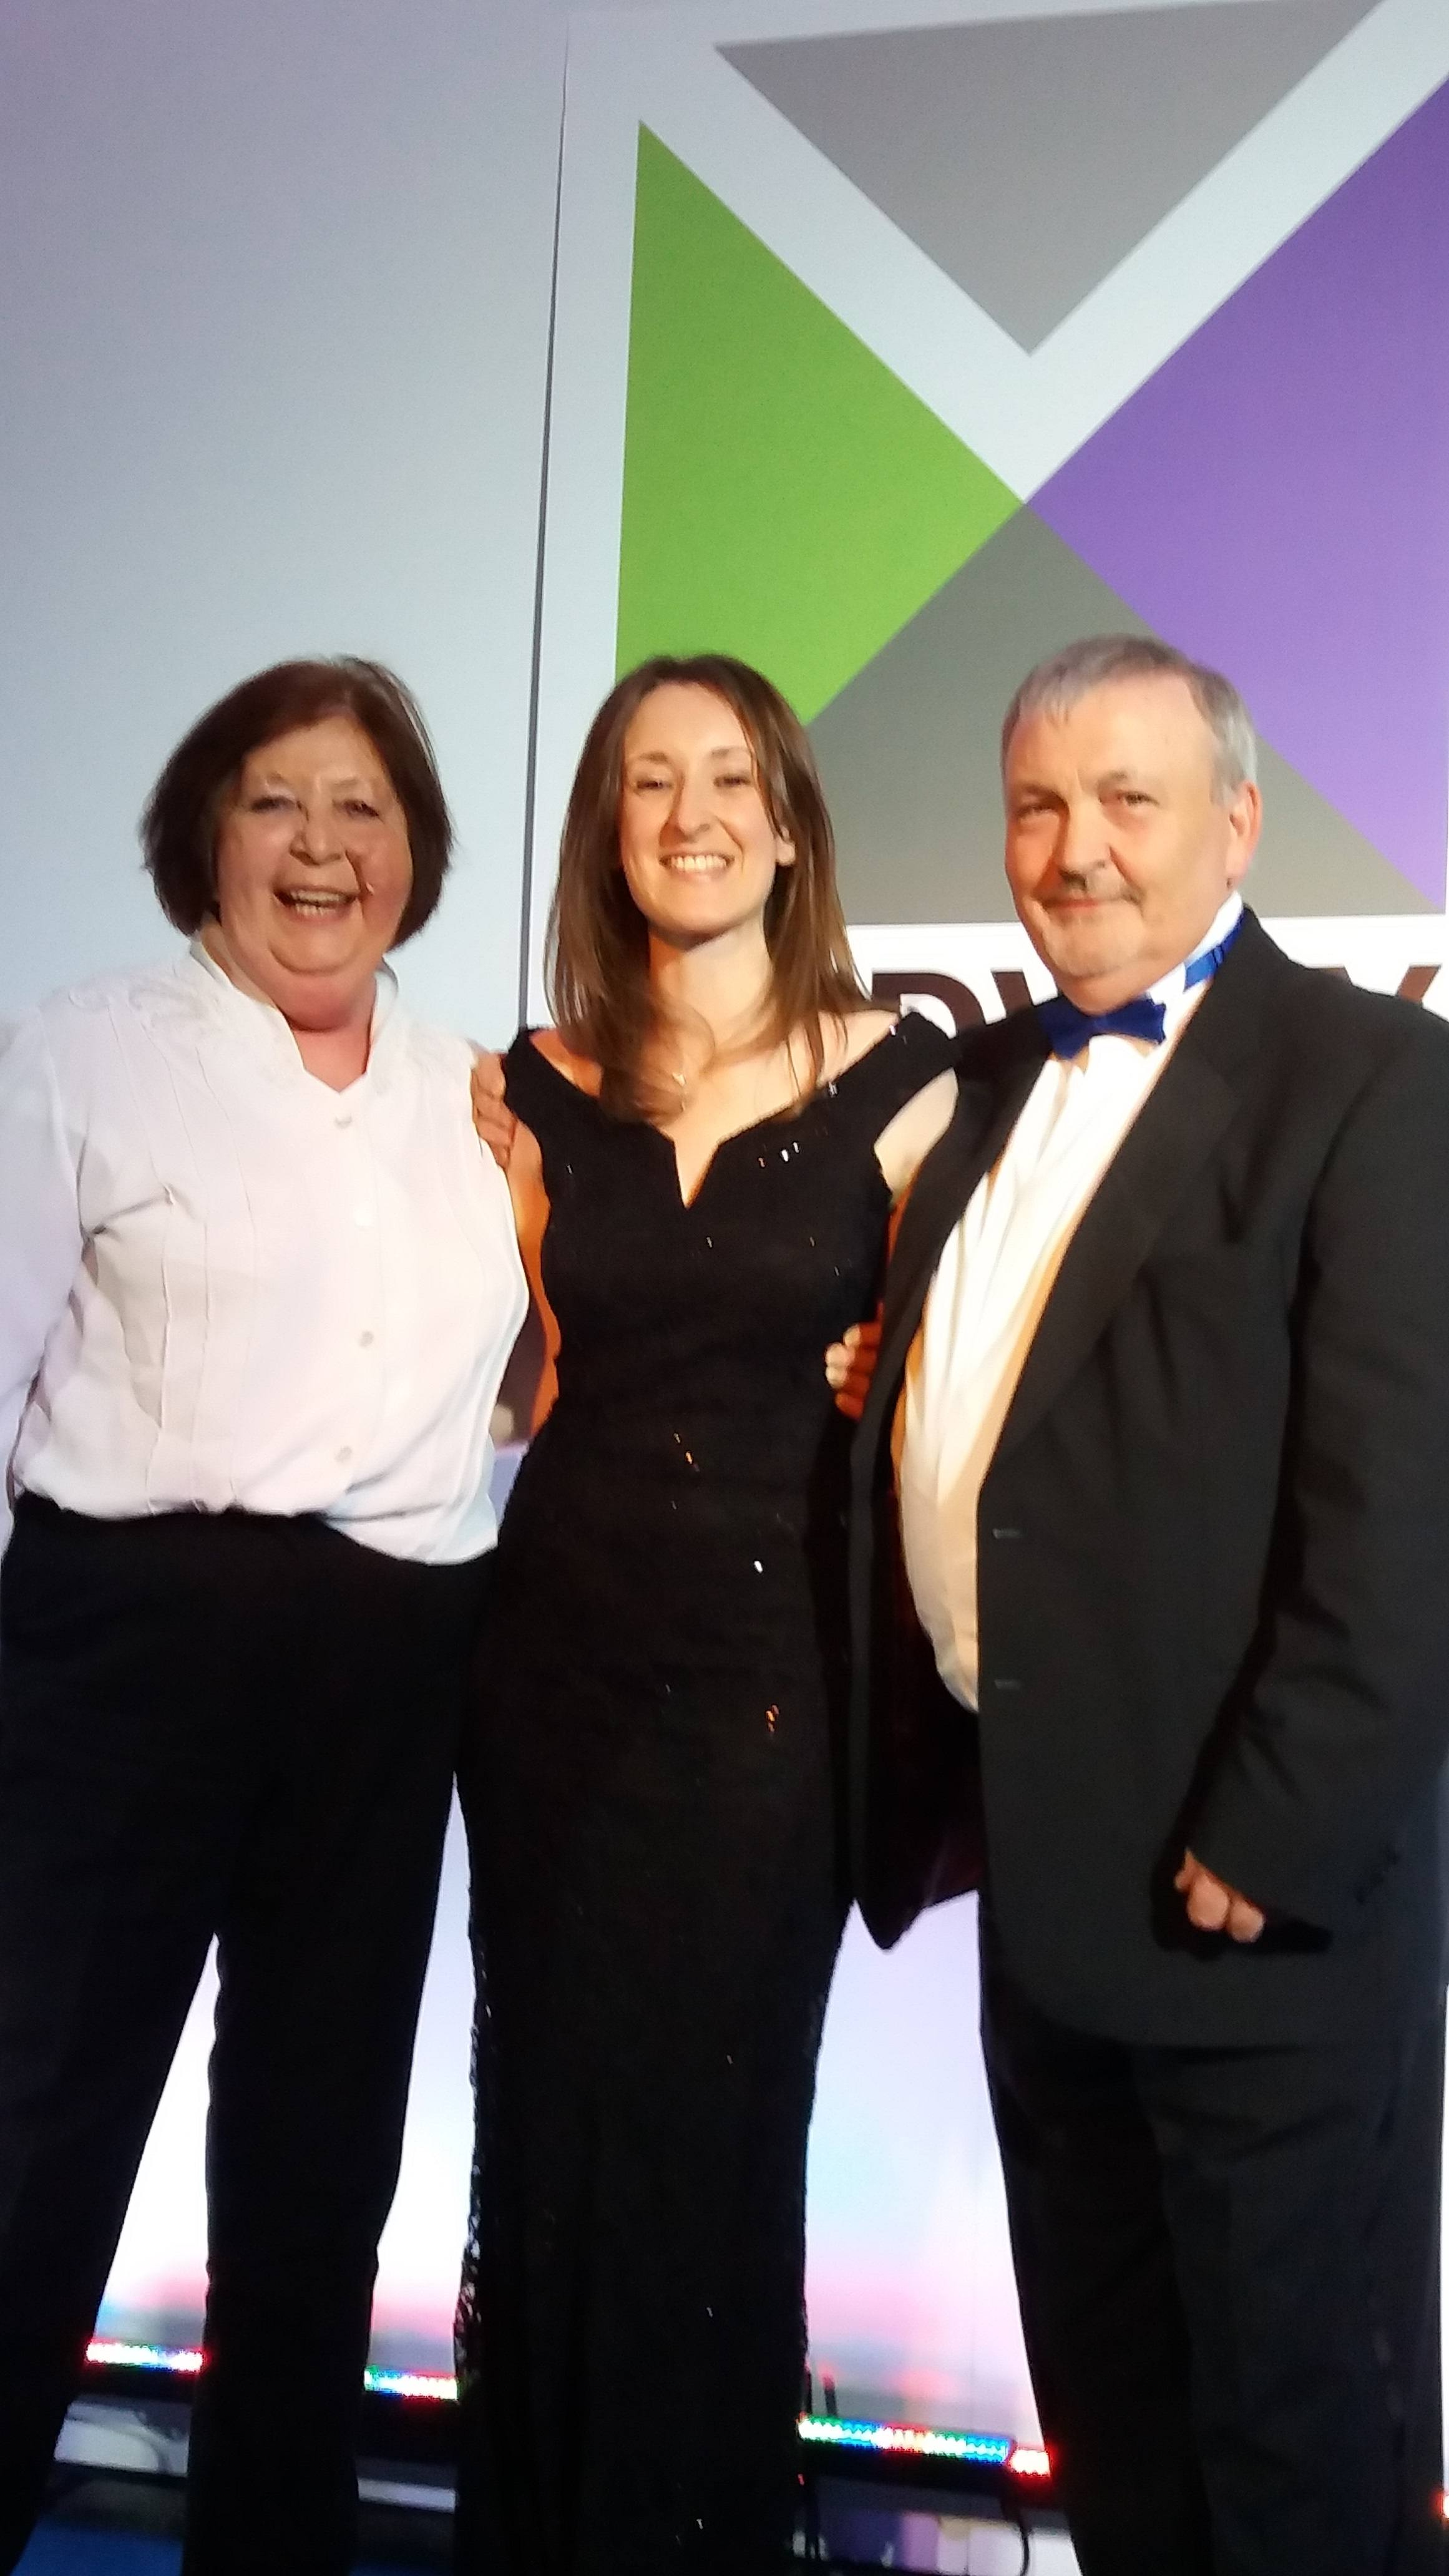 Cllr Chitty, Nicola Everett, and the Leader Cllr Jarrett at the Awards